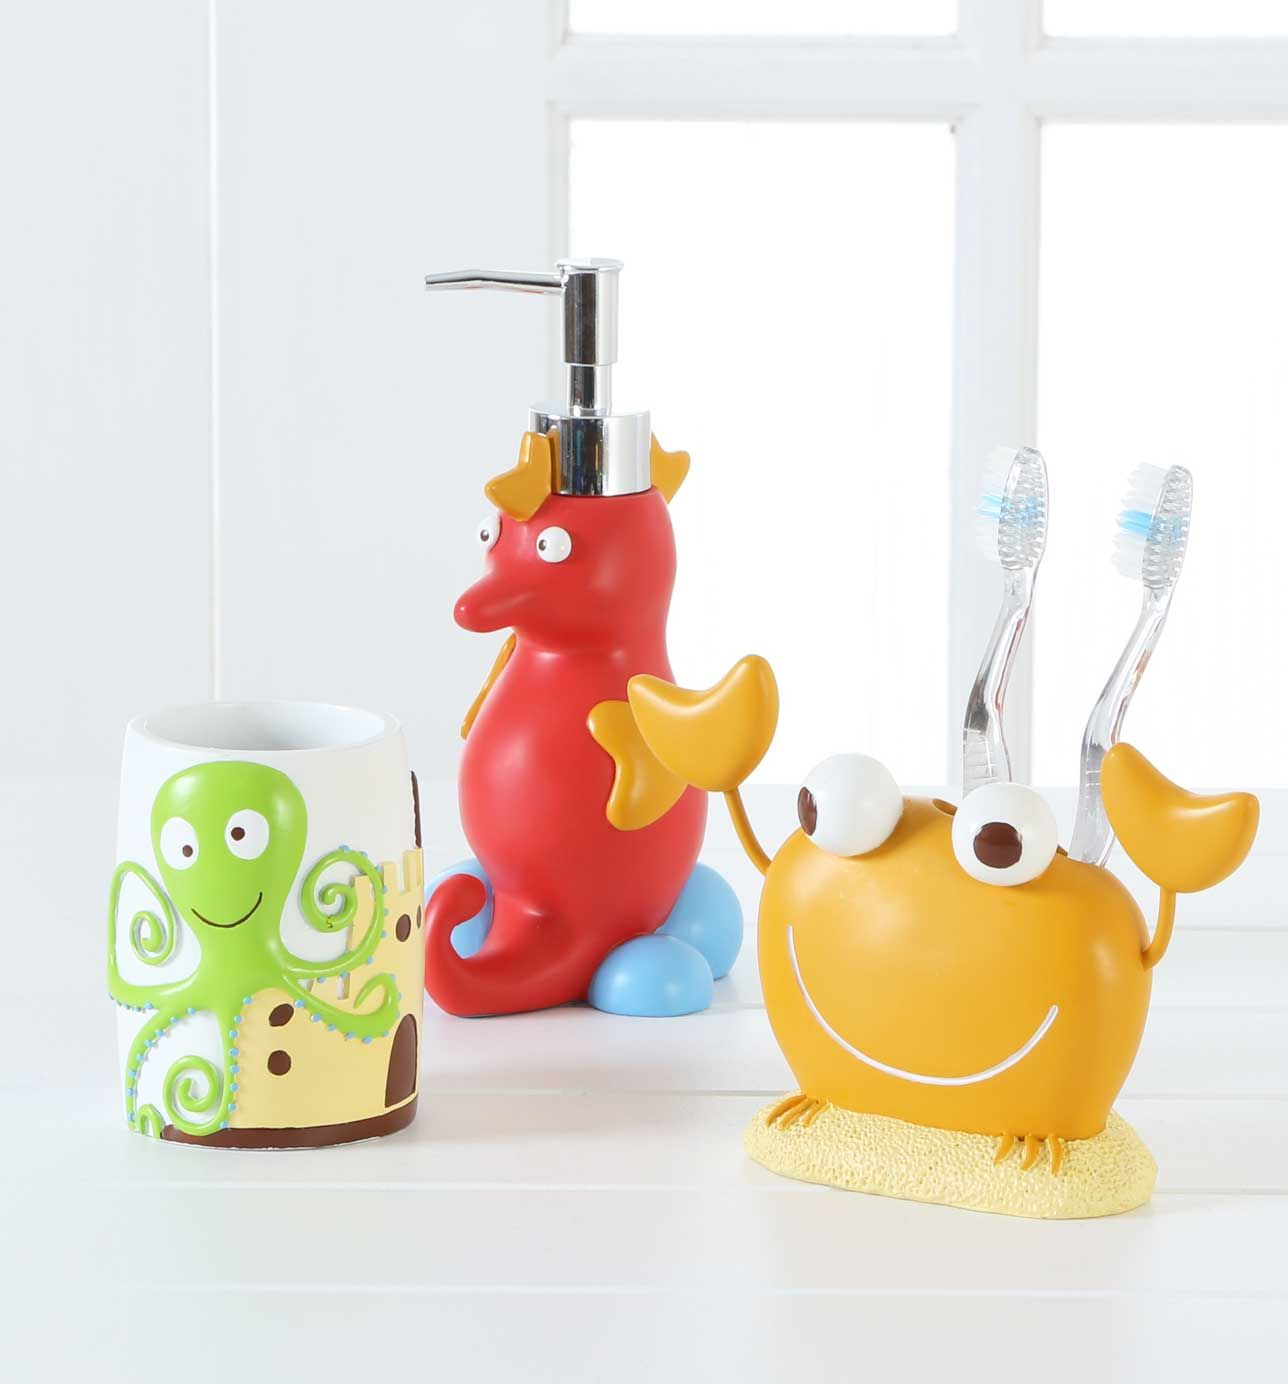 Adorable Kids Bathroom Ideas to Brighten Up Your Home | Pinterest ...